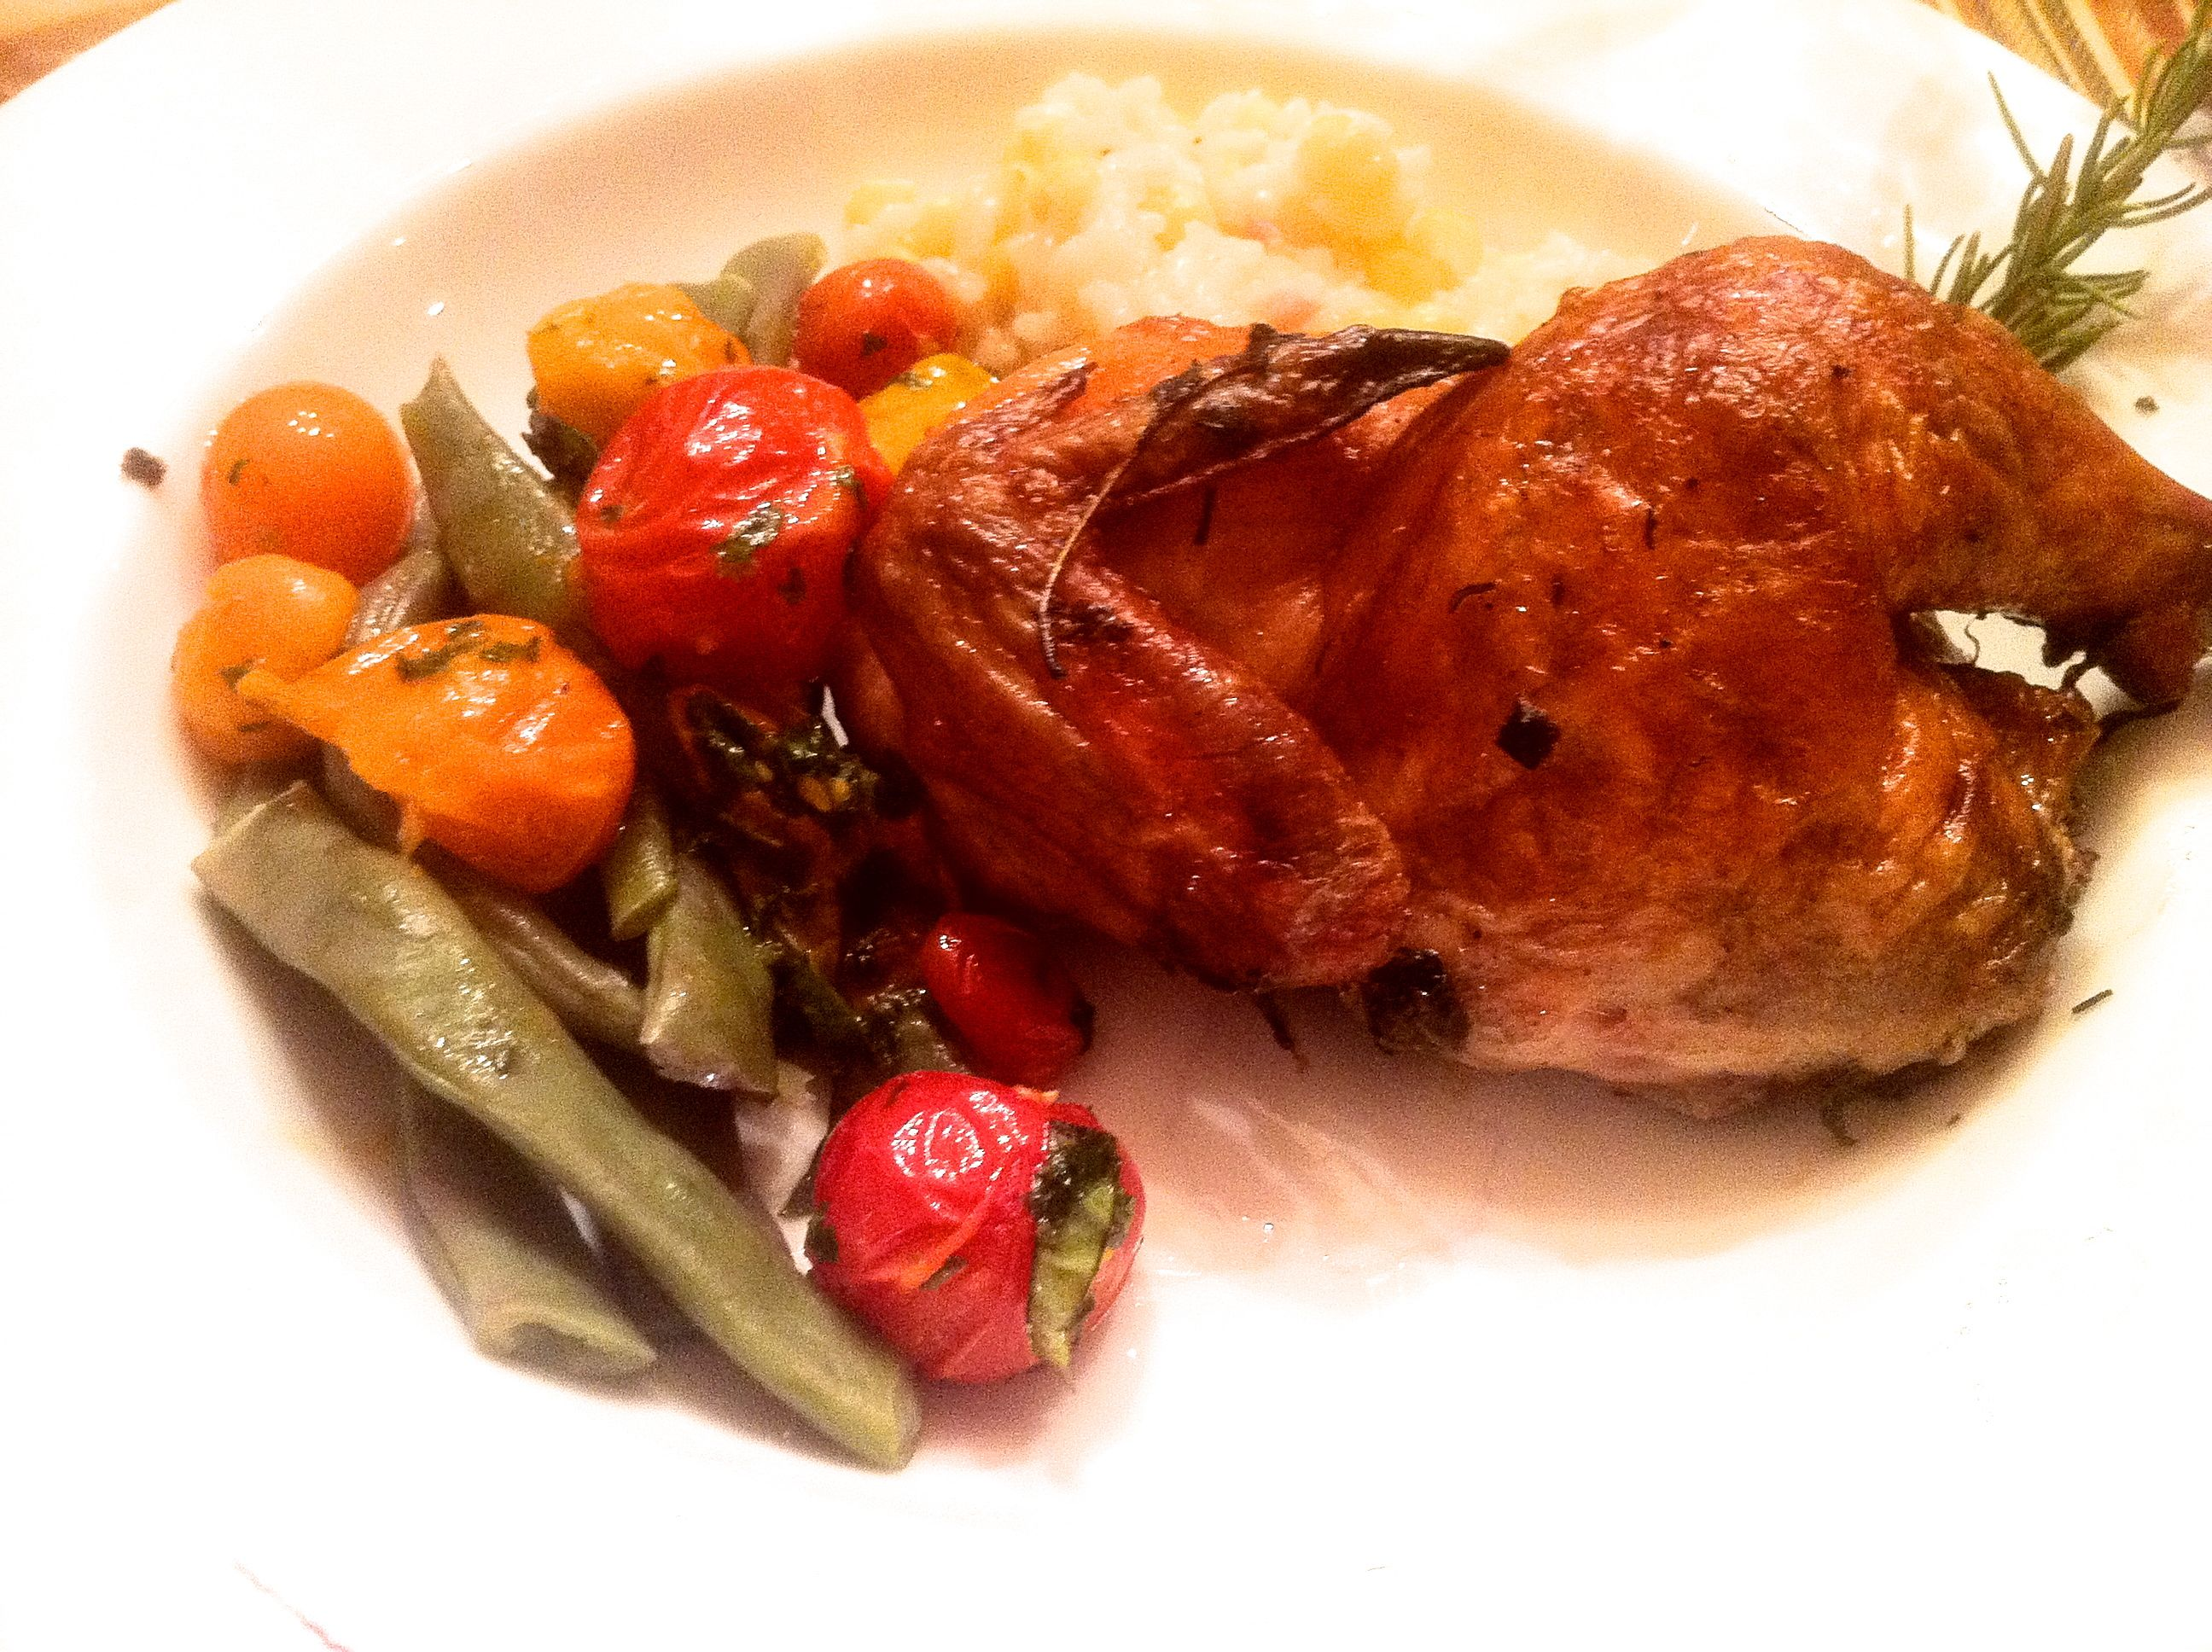 Rosemary Smoked Cornish Game Hens - LindySez | Recipes, Tips, Blog